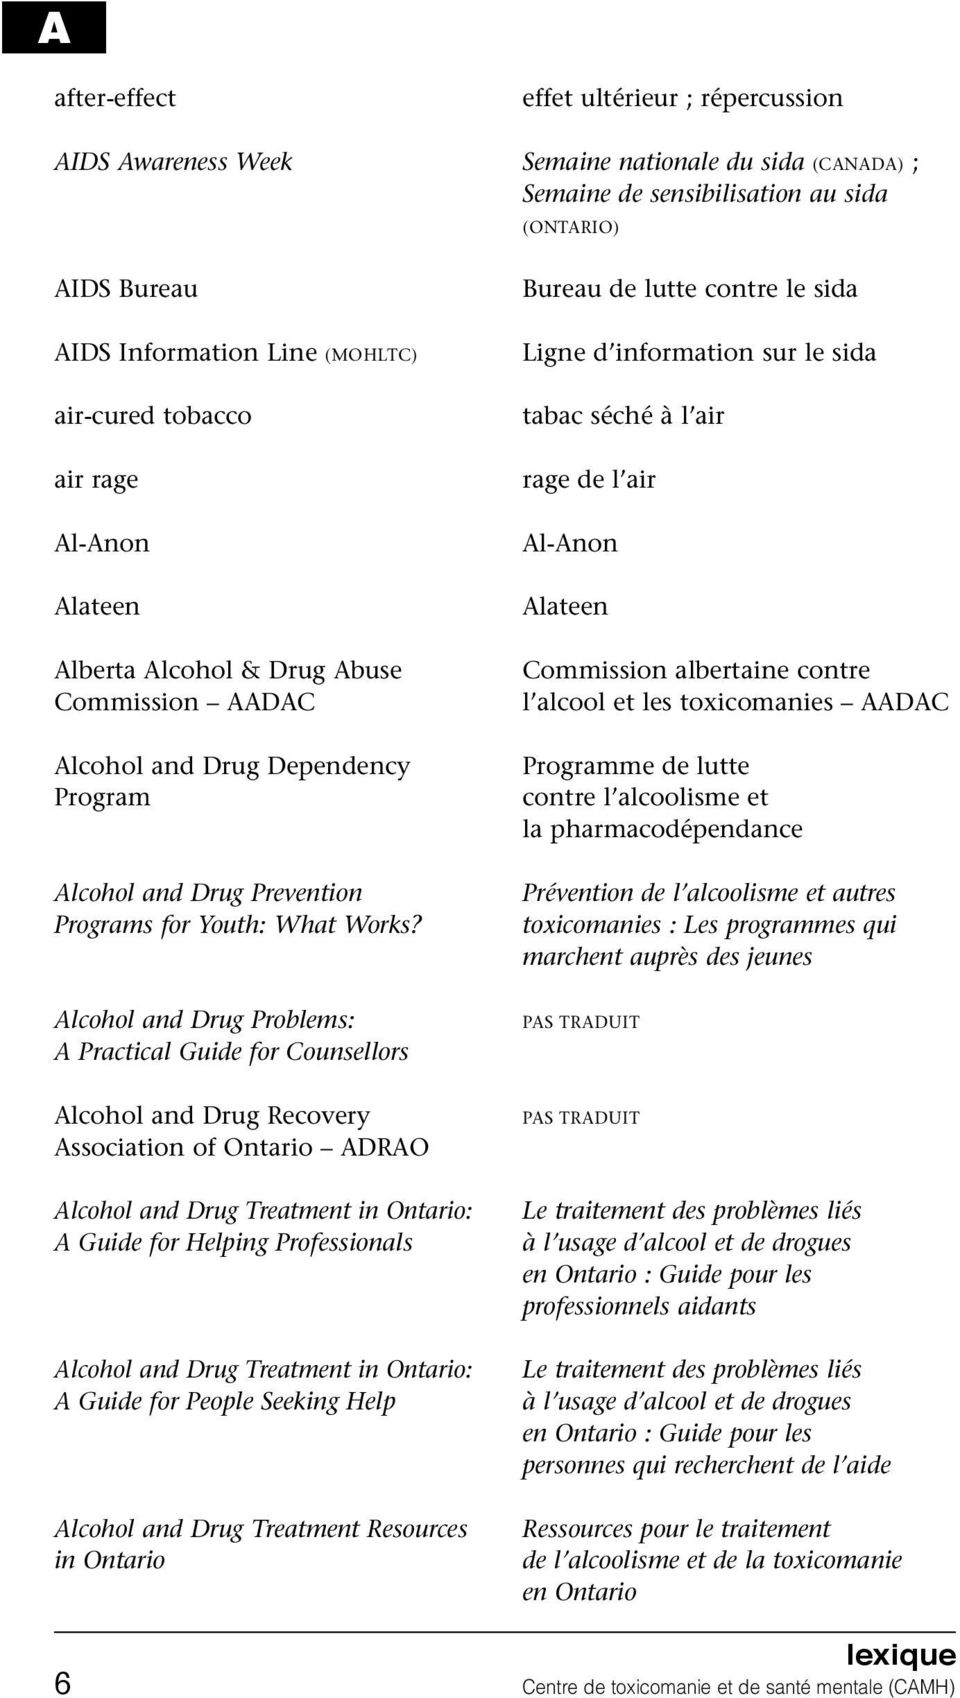 Alcohol and Drug Problems: A Practical Guide for Counsellors Alcohol and Drug Recovery Association of Ontario ADRAO Alcohol and Drug Treatment in Ontario: A Guide for Helping Professionals Alcohol